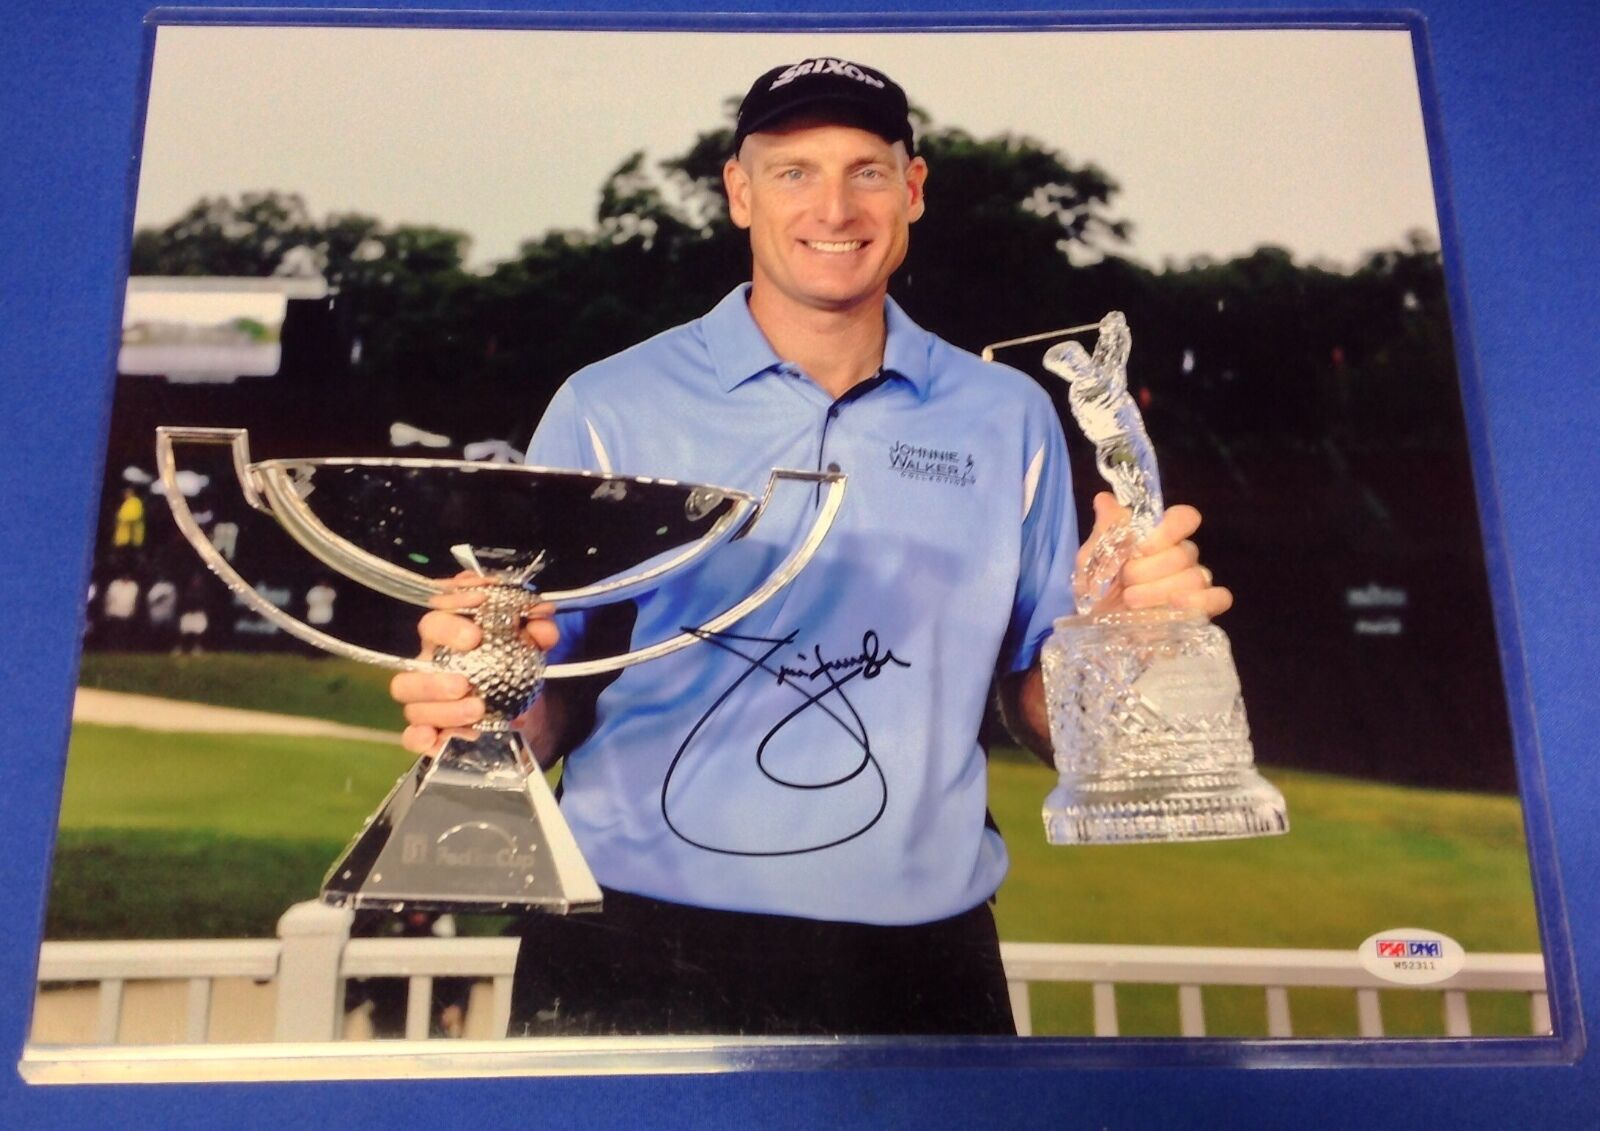 Jim Furyk signed 11x14 Photo PSA/DNA Cert # W52311